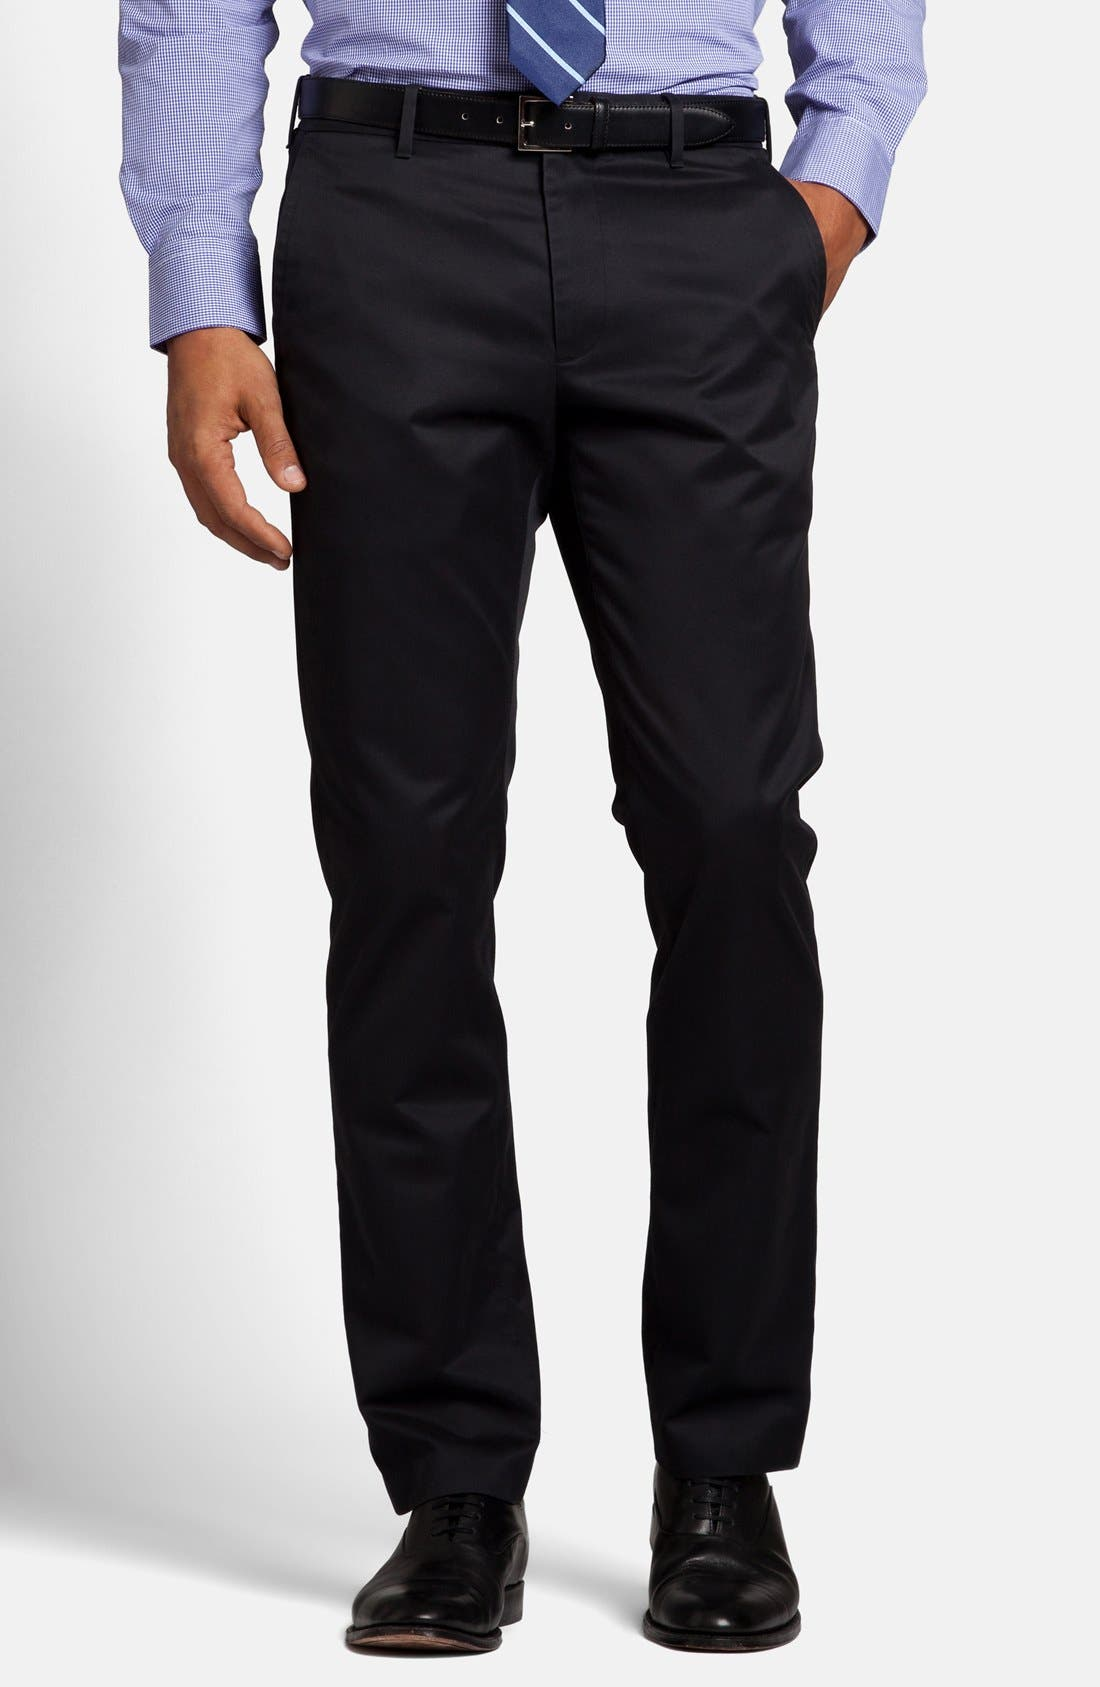 'Weekday Warriors' Non-Iron Slim Fit Cotton Chinos,                         Main,                         color, TUESDAY BLACKS